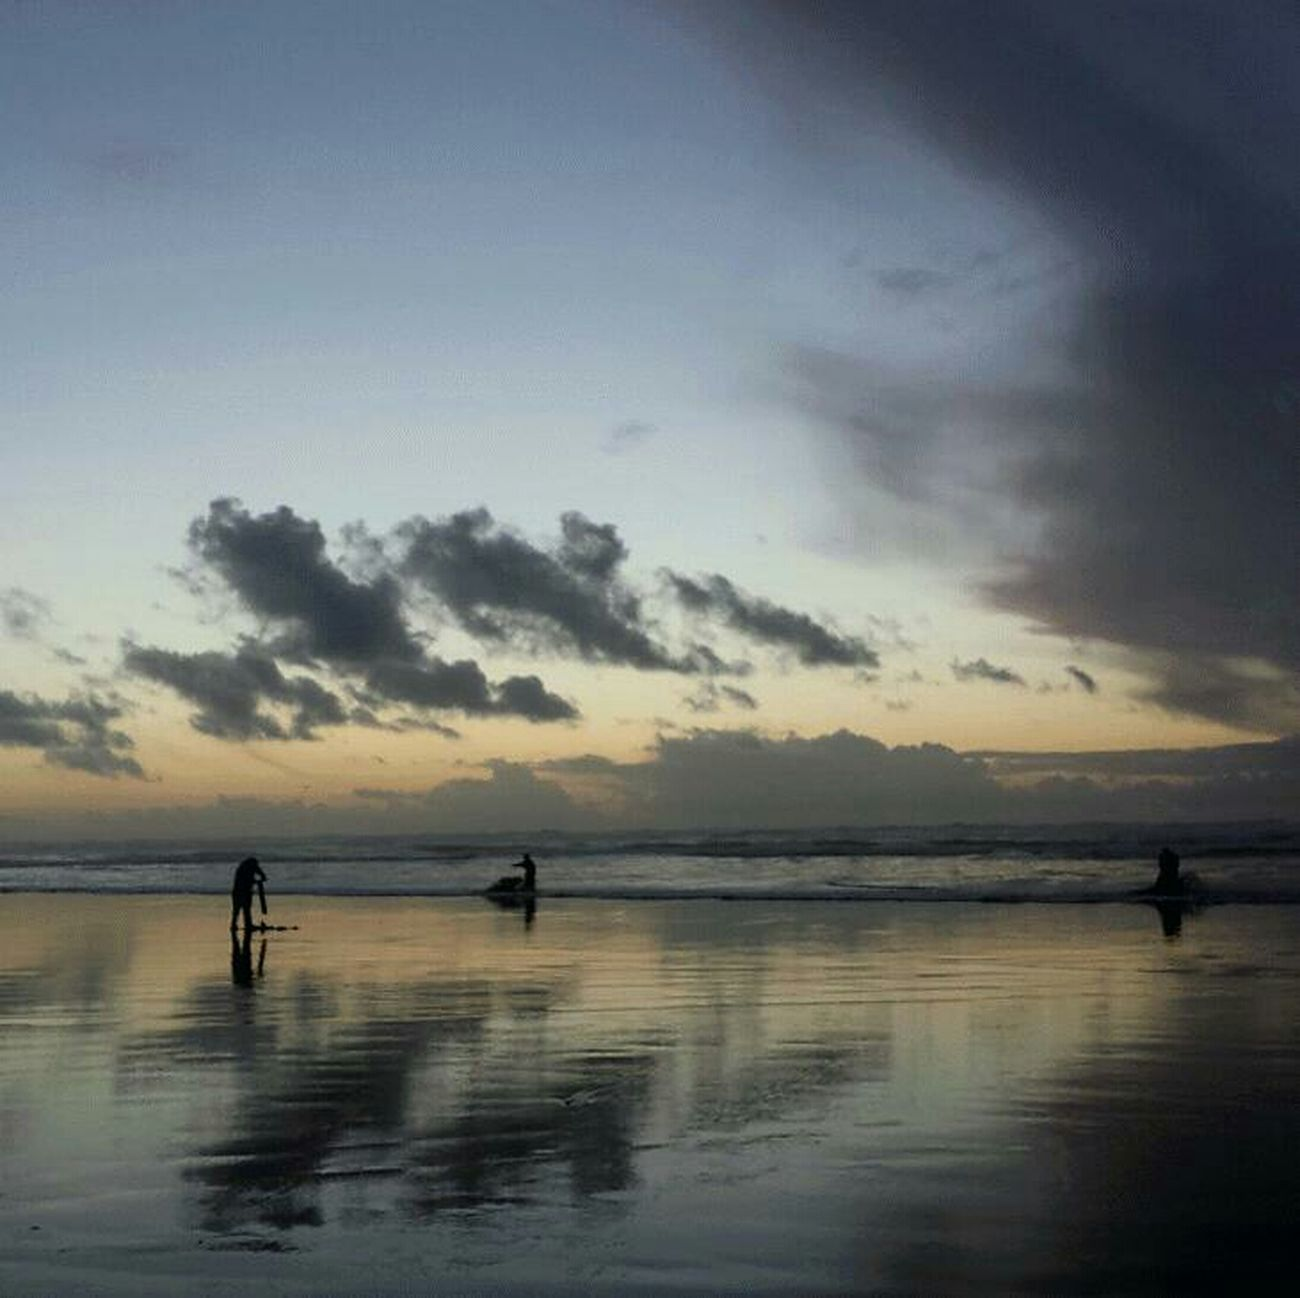 Beach Ocean Razor Clams Silhouette